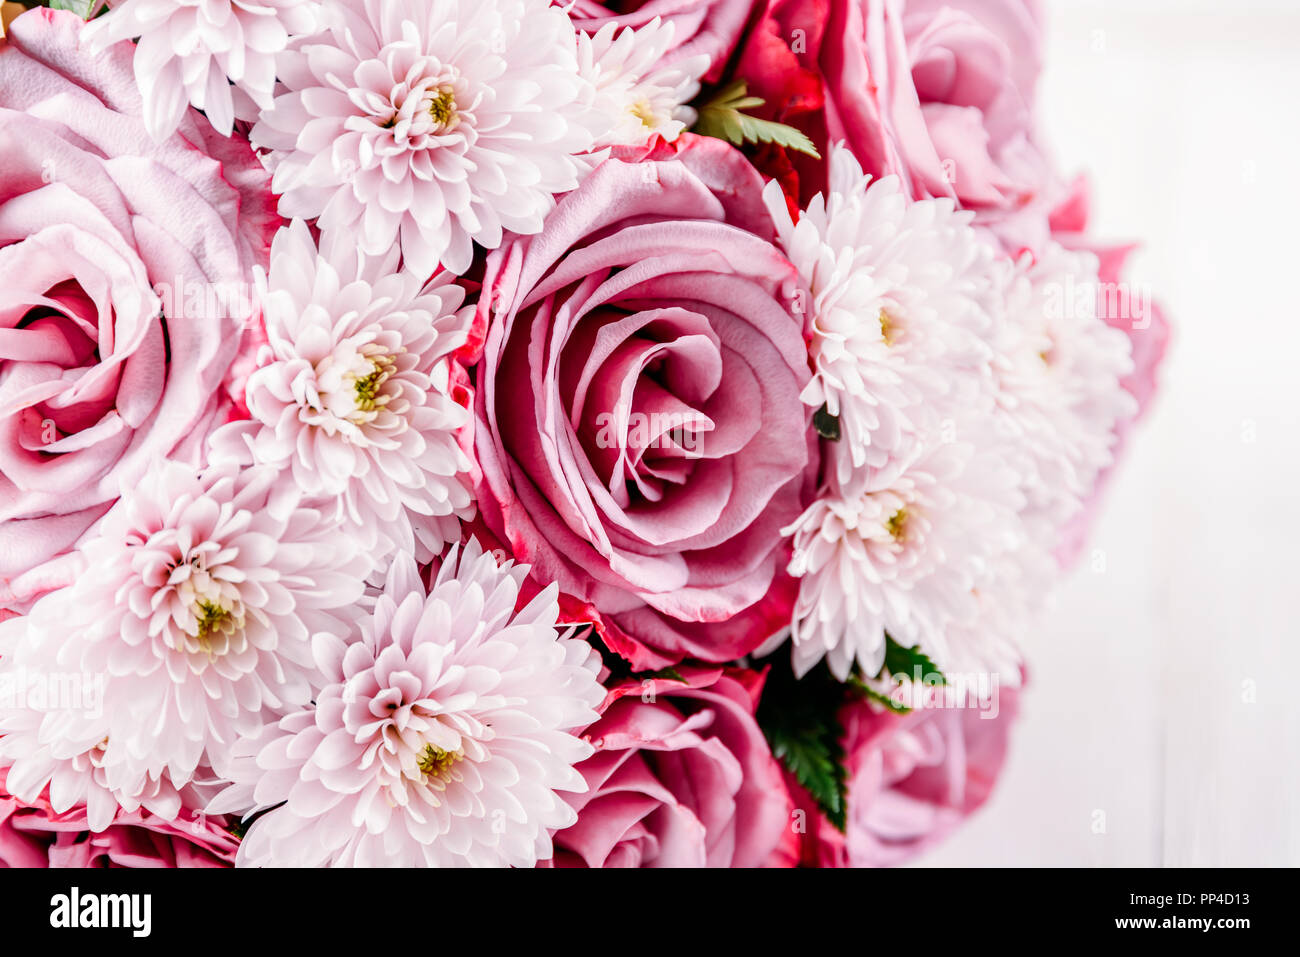 Pink Roses And Gerbera Daisy Flowers Wedding Bouquet Stock Photo